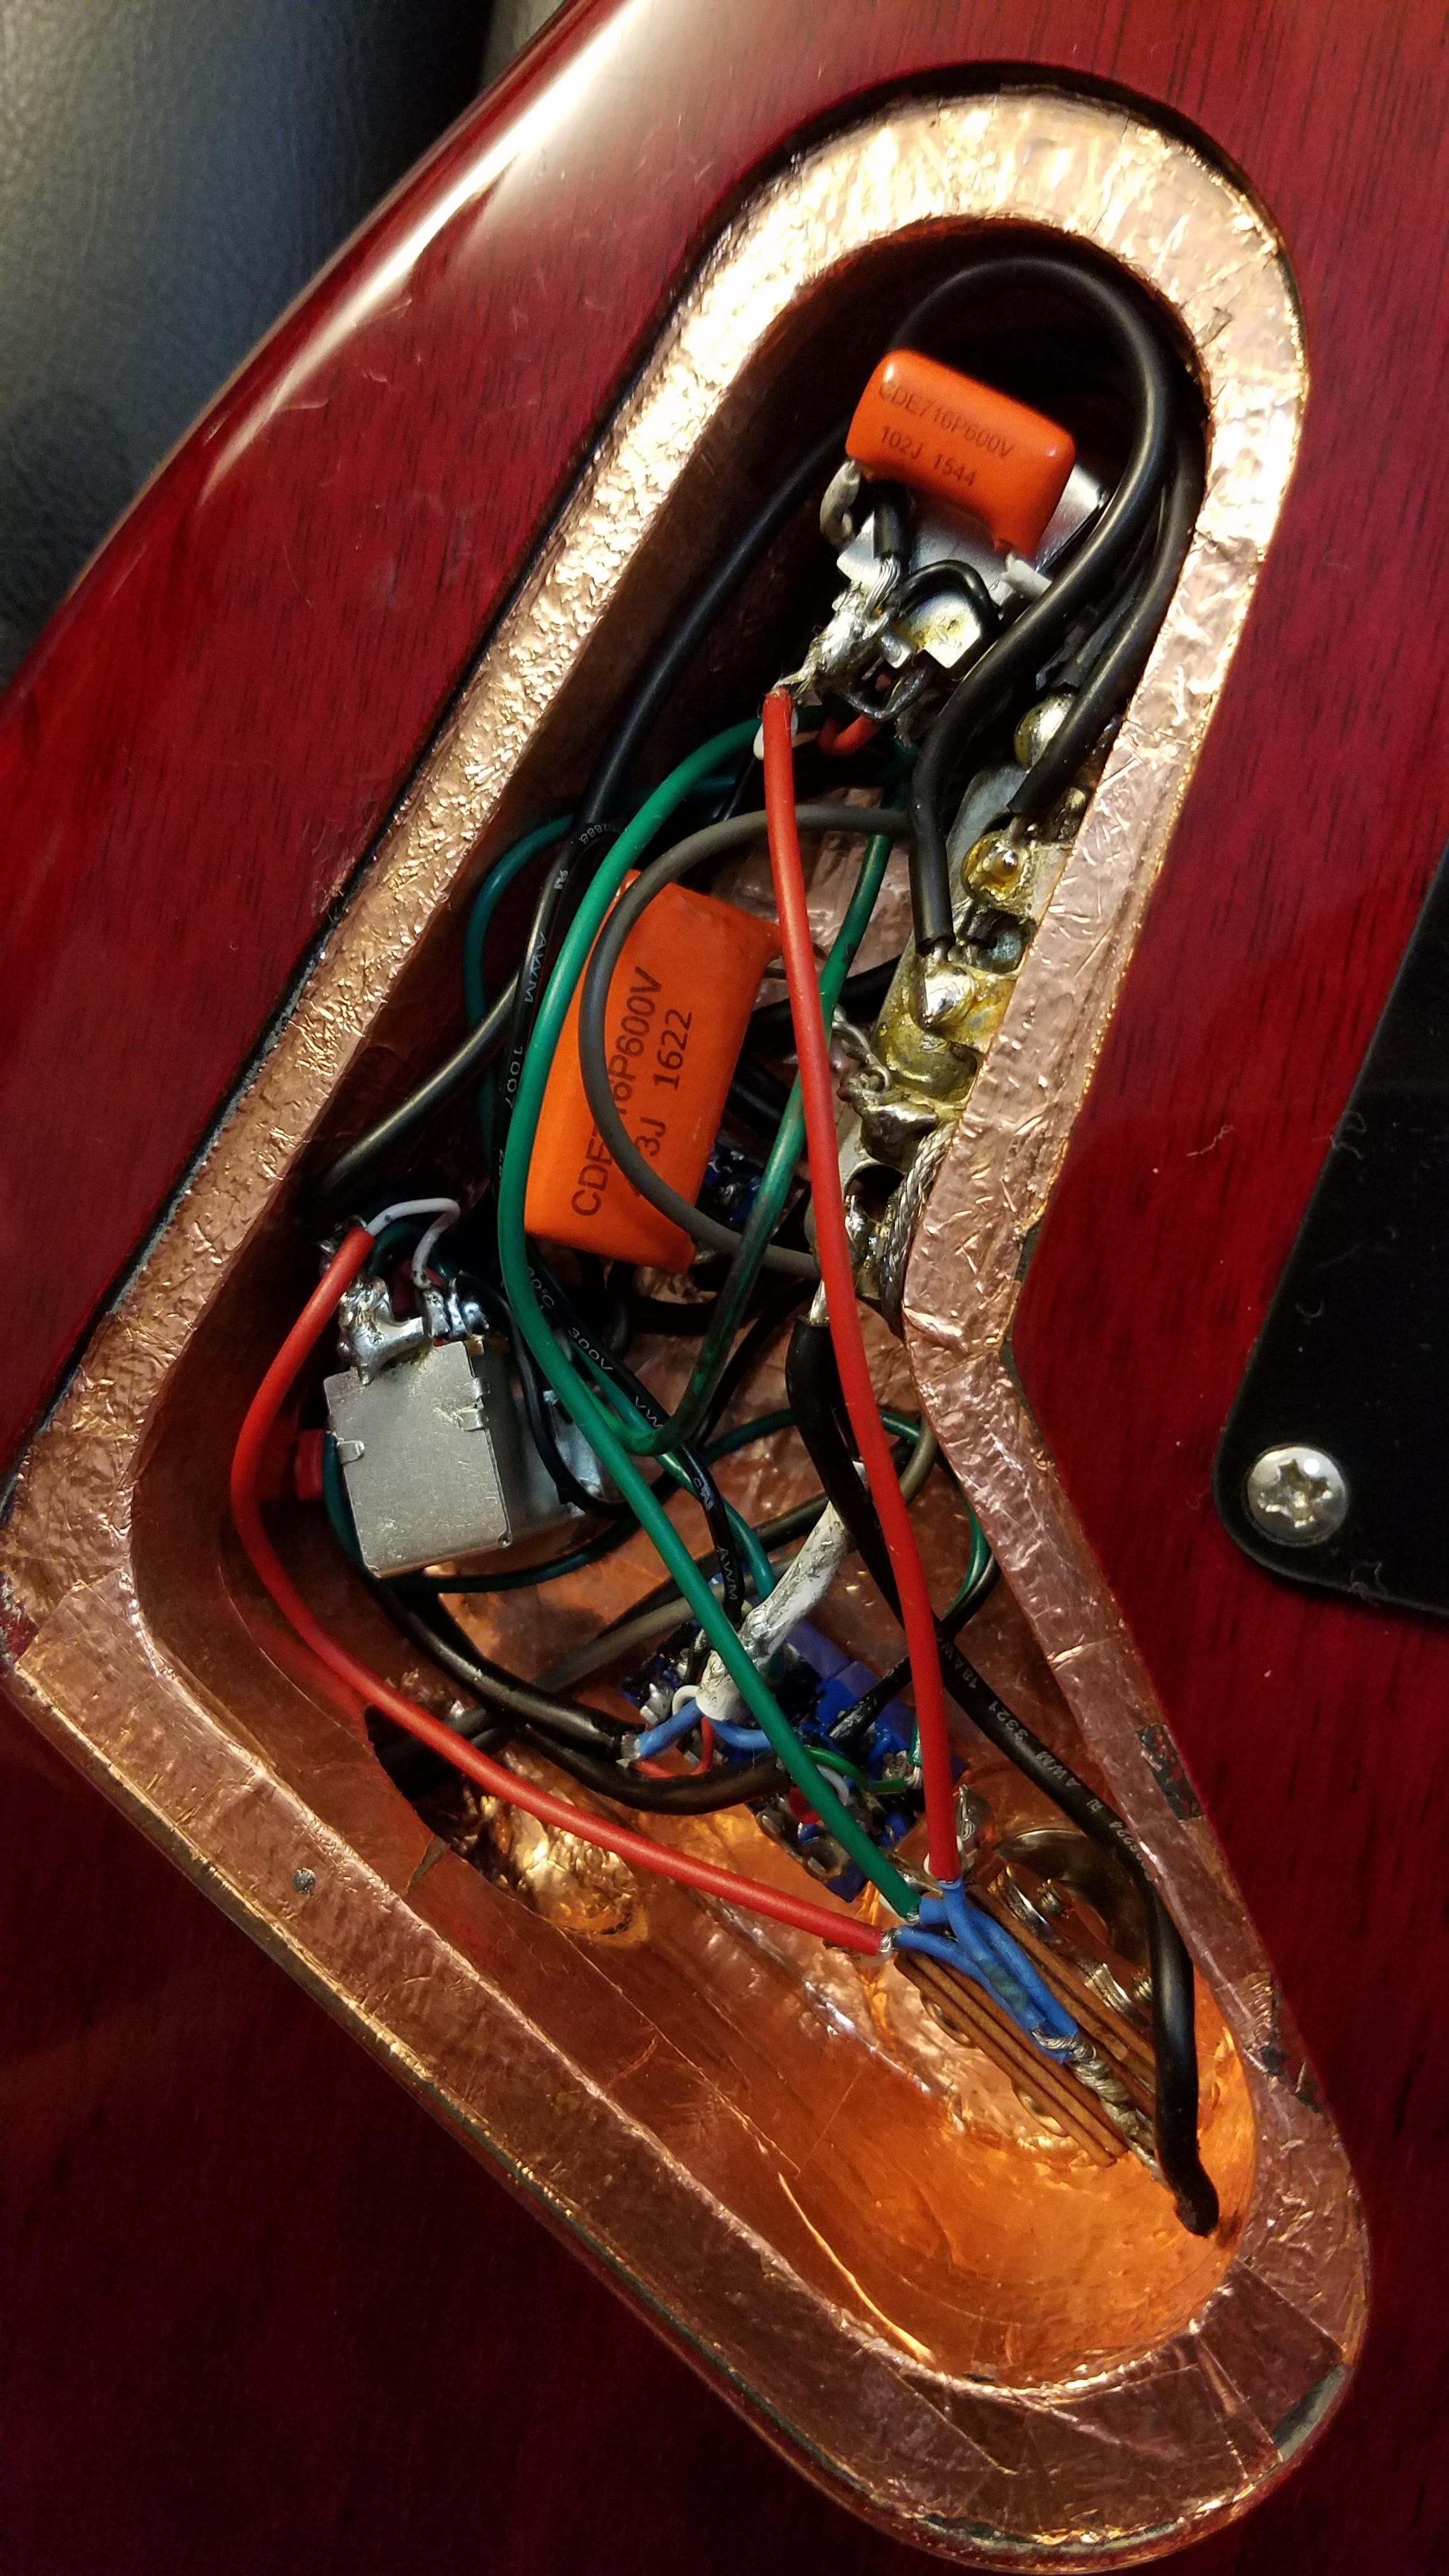 Wiring Color Code For Se Model G&b Pickups? | Official Prs Guitars Forum - Prs Wiring Diagram